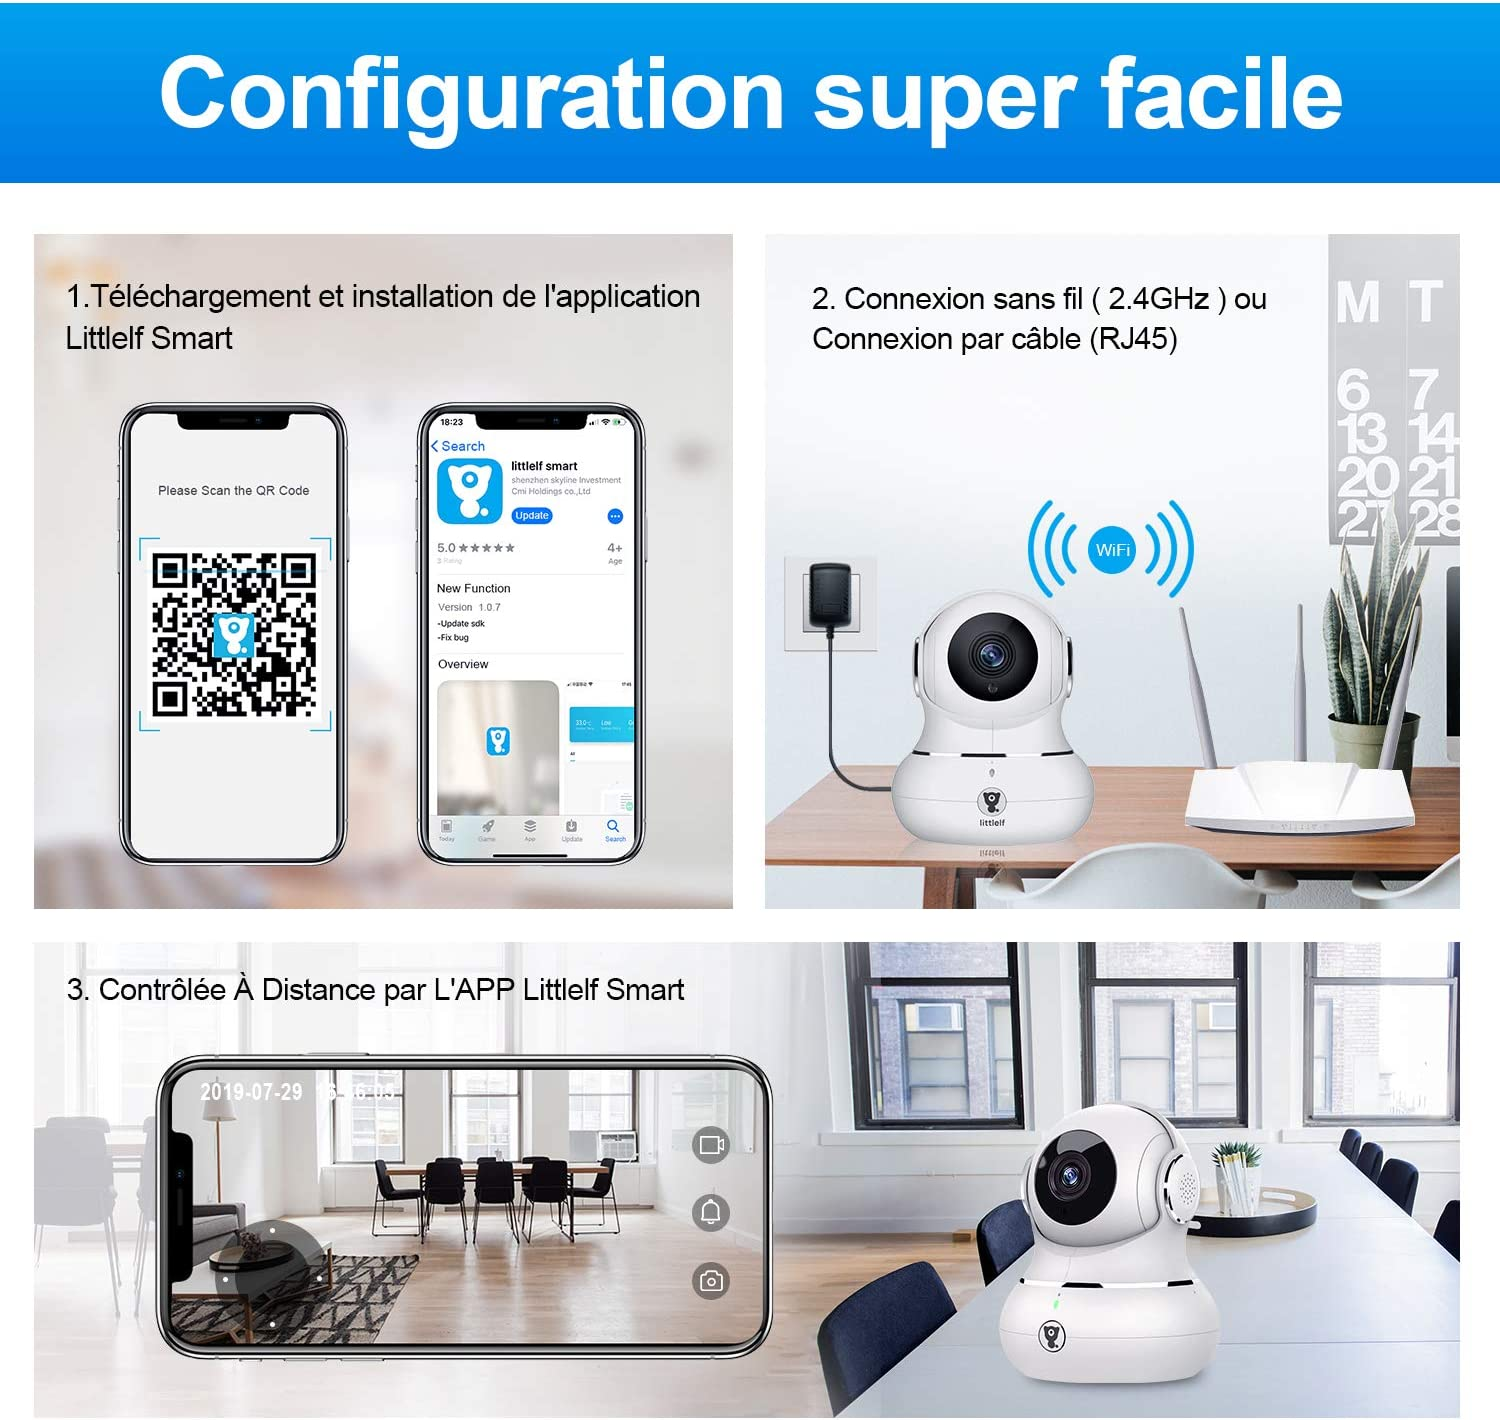 Littlelf Ip Camera 1080p Full Hd Wireless Remote Monitoring 350 Panorama And 105 Tilt Controlled By Applications 3d Panoramic Camera Remote Monitoring For Babies And Animals White Baumarkt